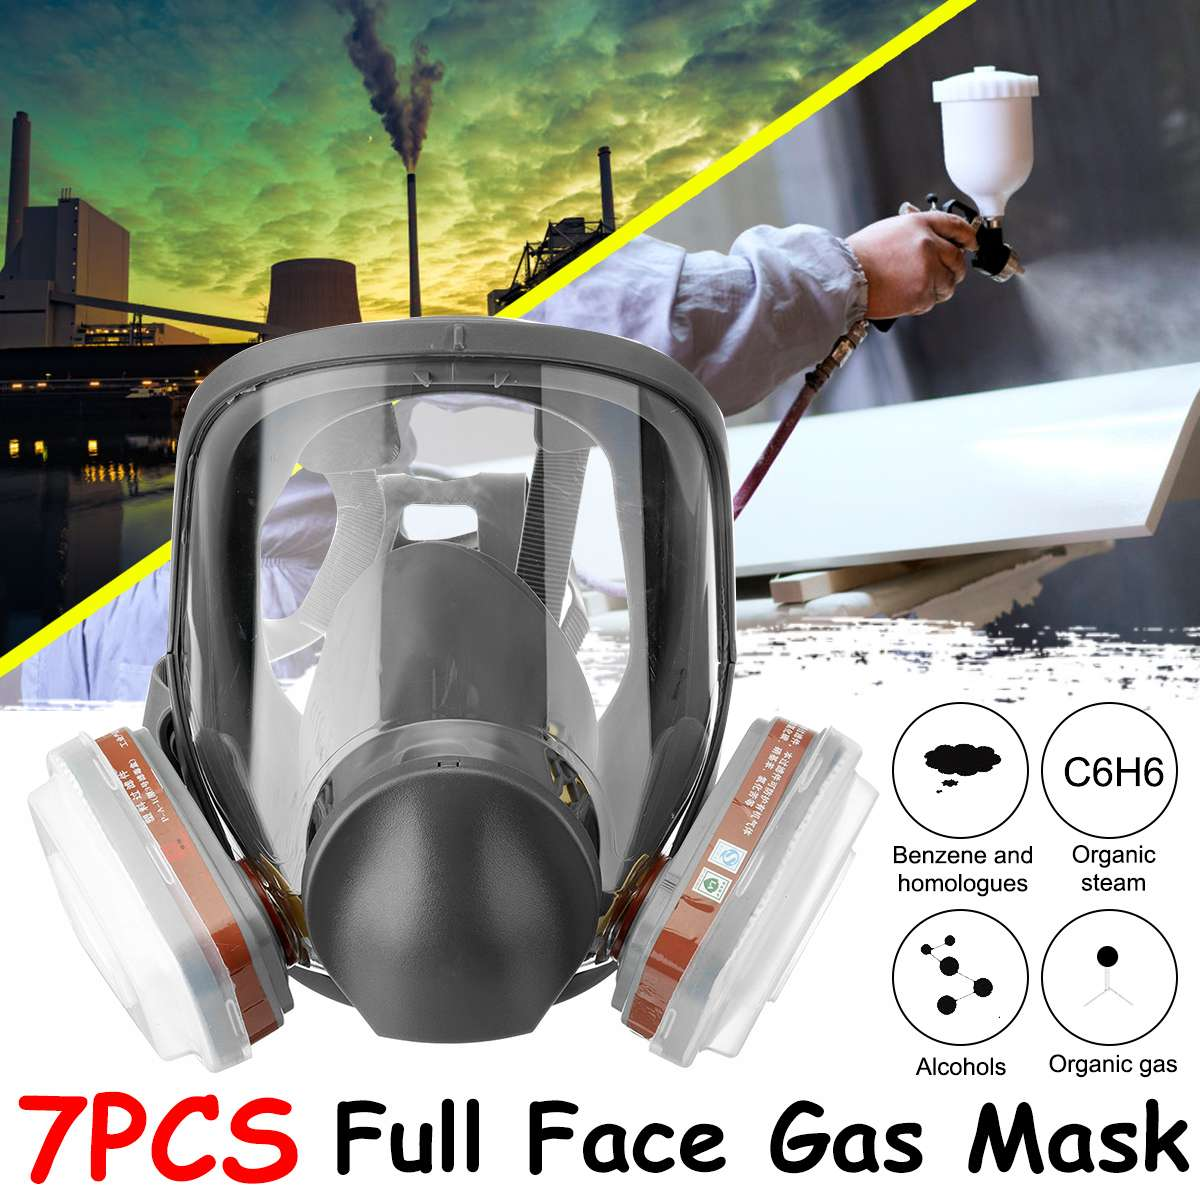 7PCS Protection Safety Respirator Gas Mask For 6800 Gas Mask Painting Spraying Full Face Facepiece Respirator KN95 Filter Cotton